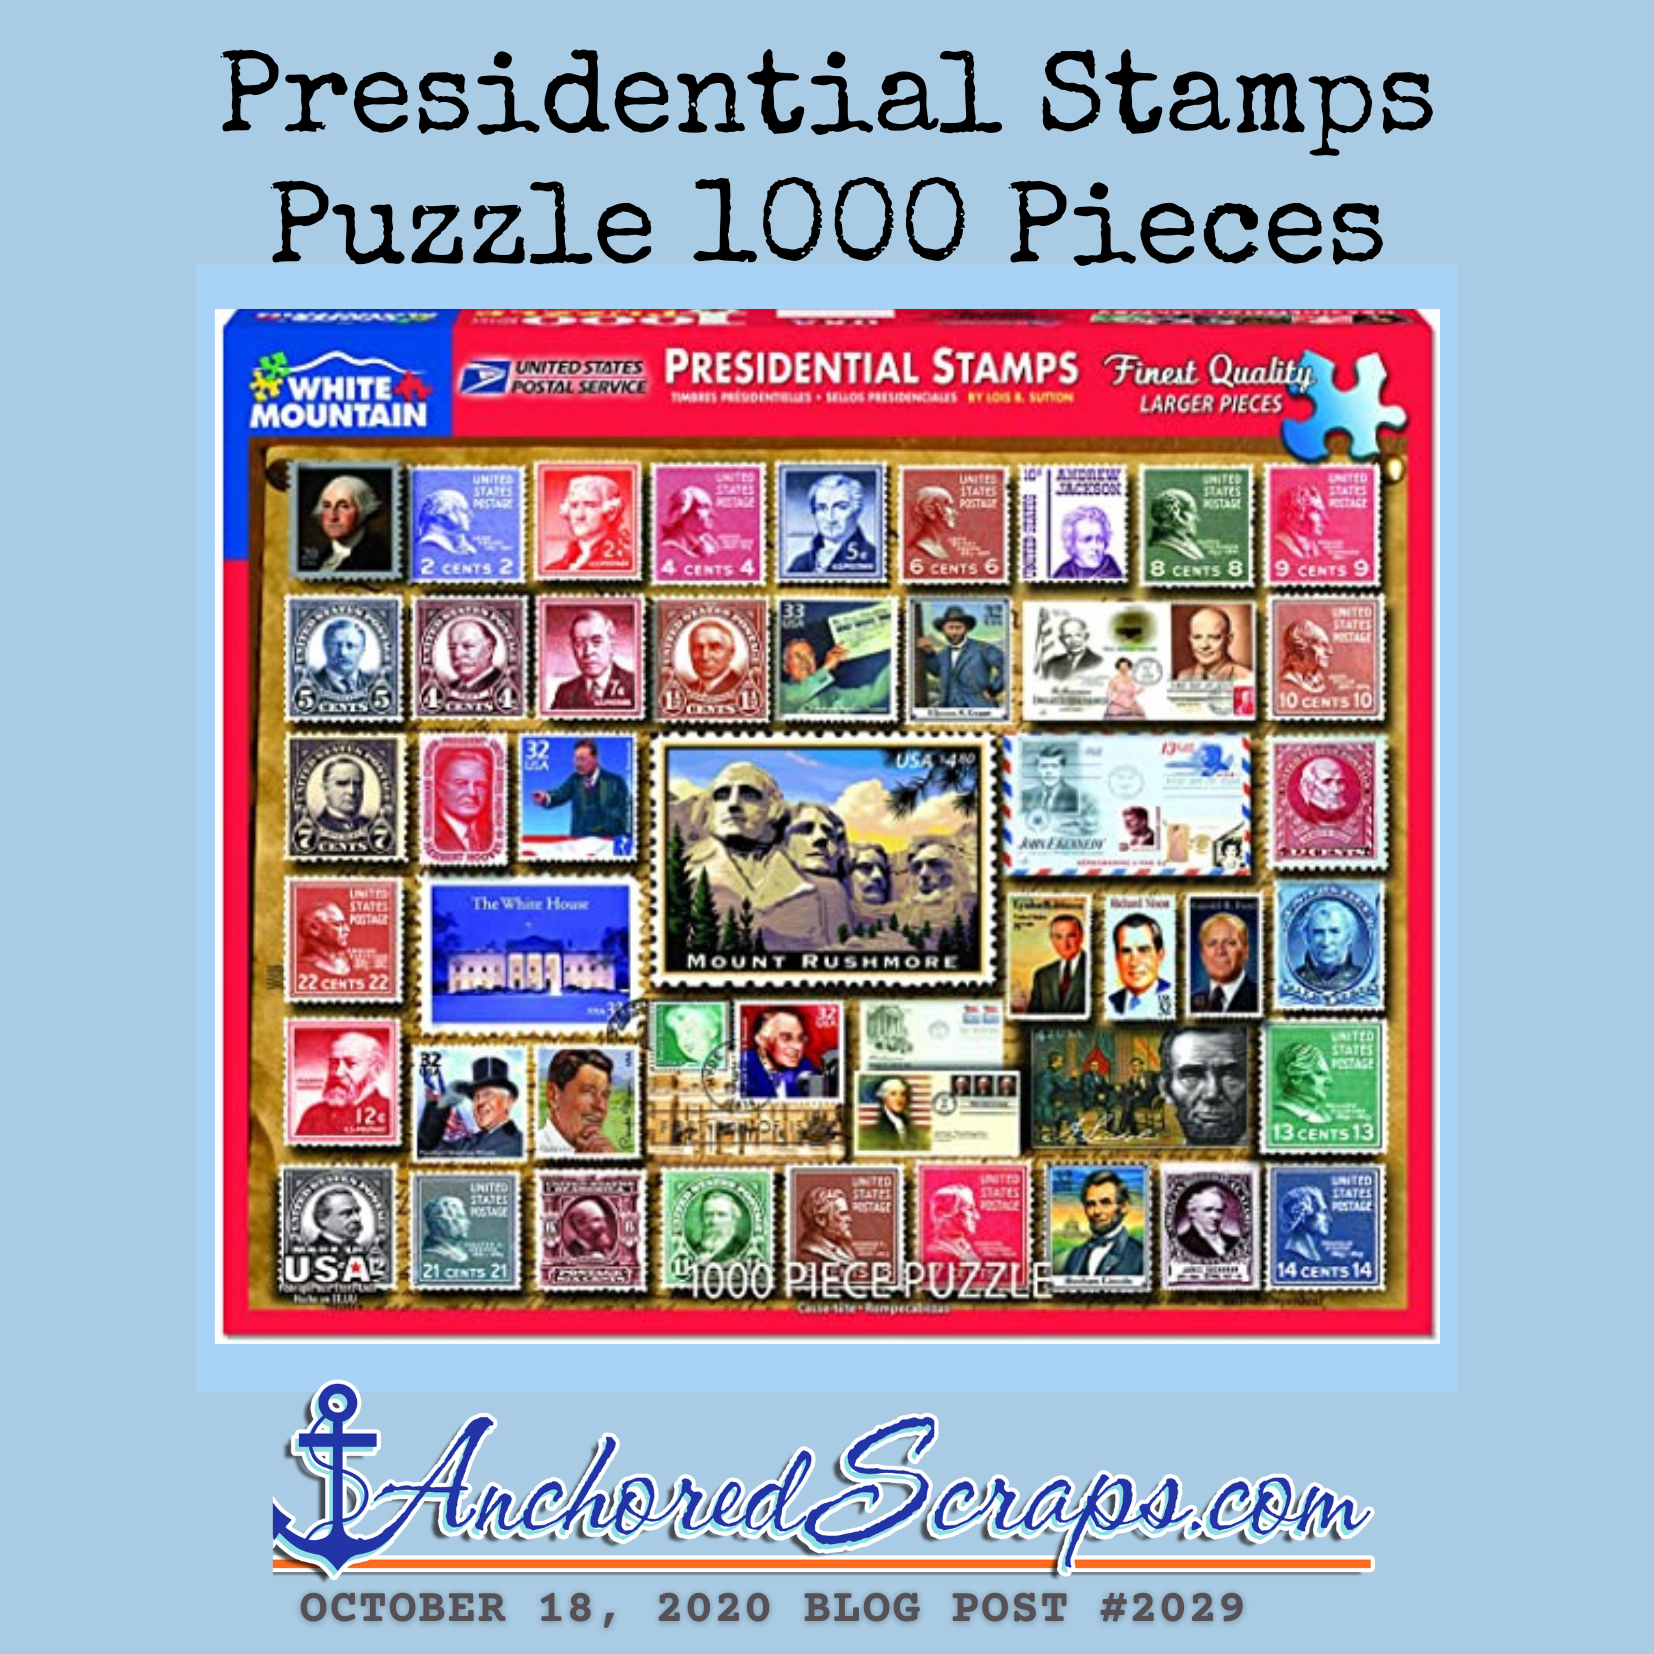 Presidential stamps puzzle 1000 pieces #2029